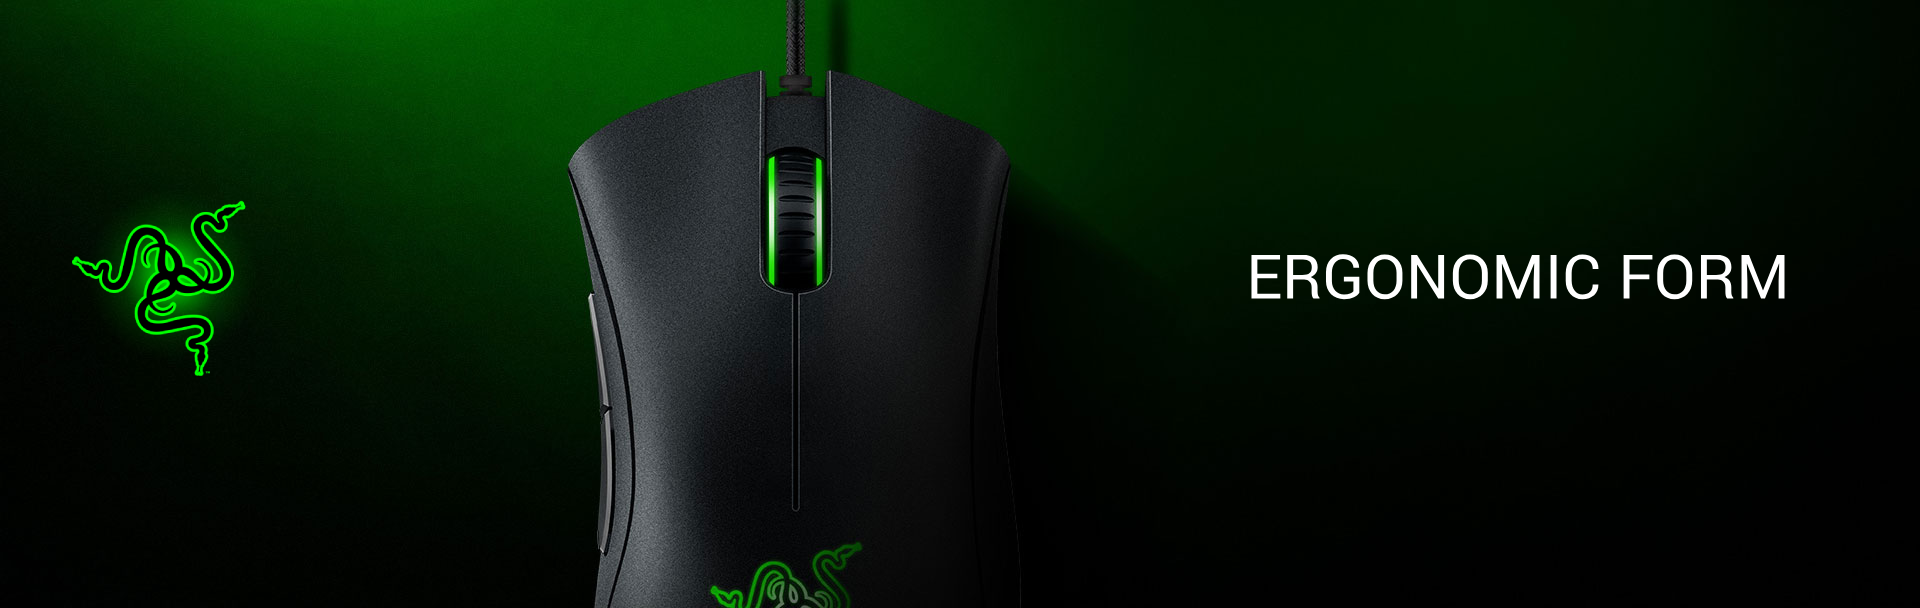 Razer DeathAdder Essential Ergonomic 6400DPI - 4G USB Gaming